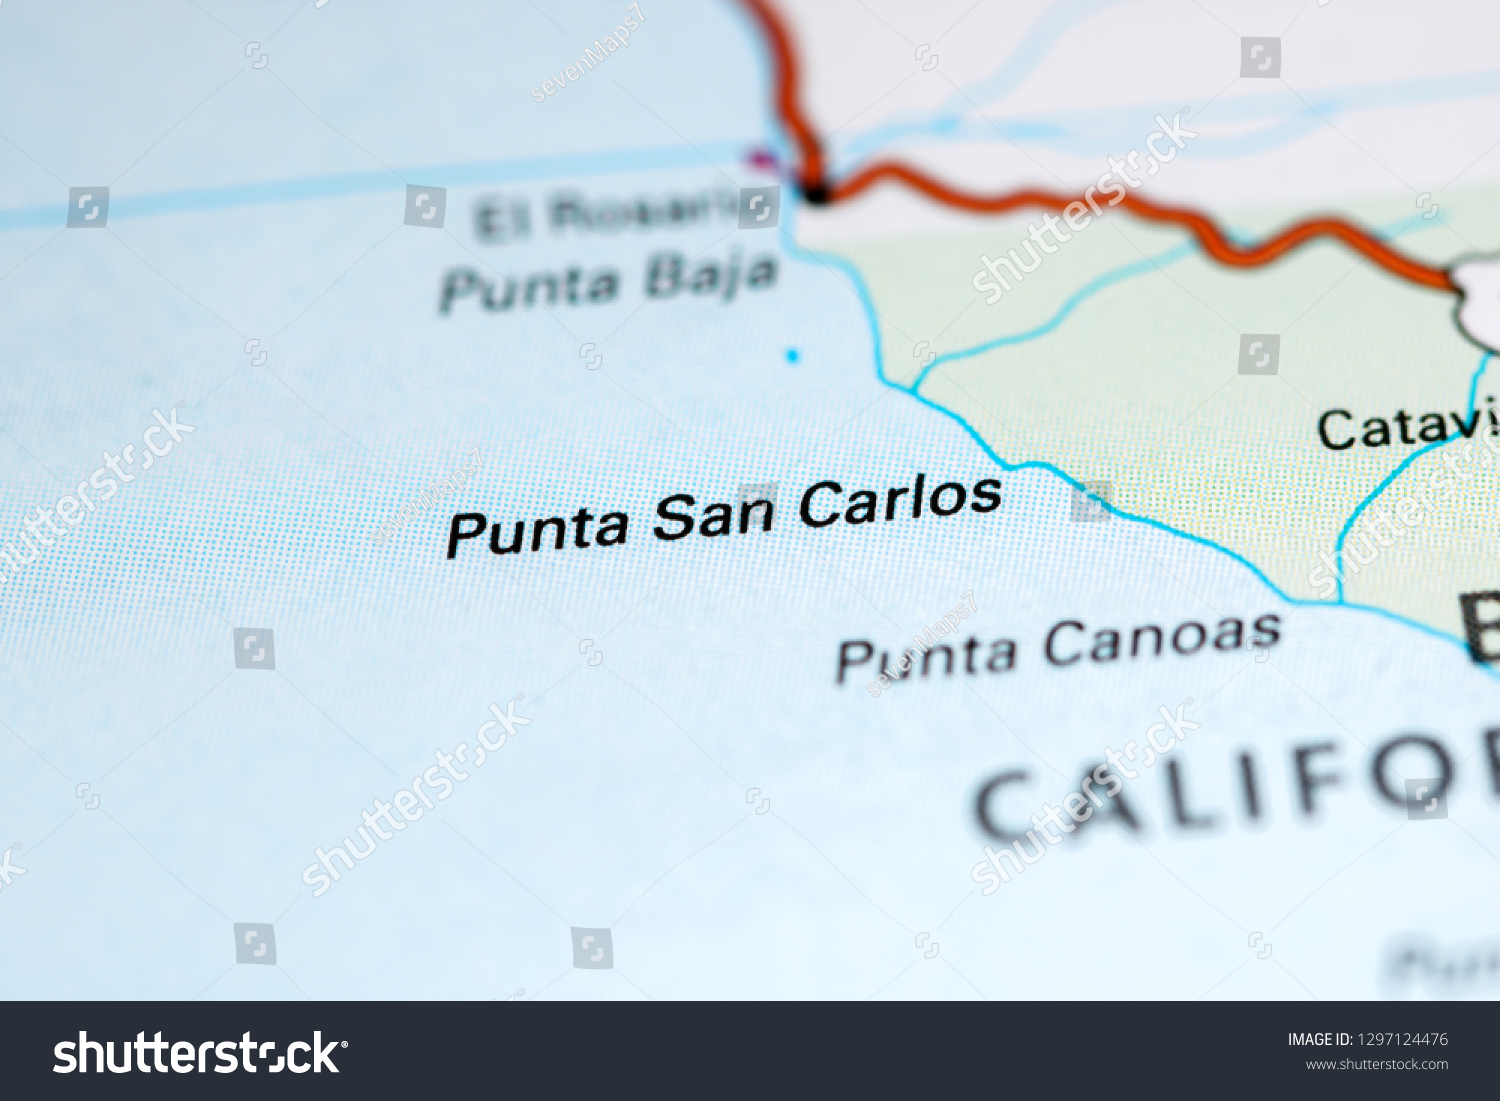 Punta San Carlos Mexico On Map Stock Photo (Edit Now ...